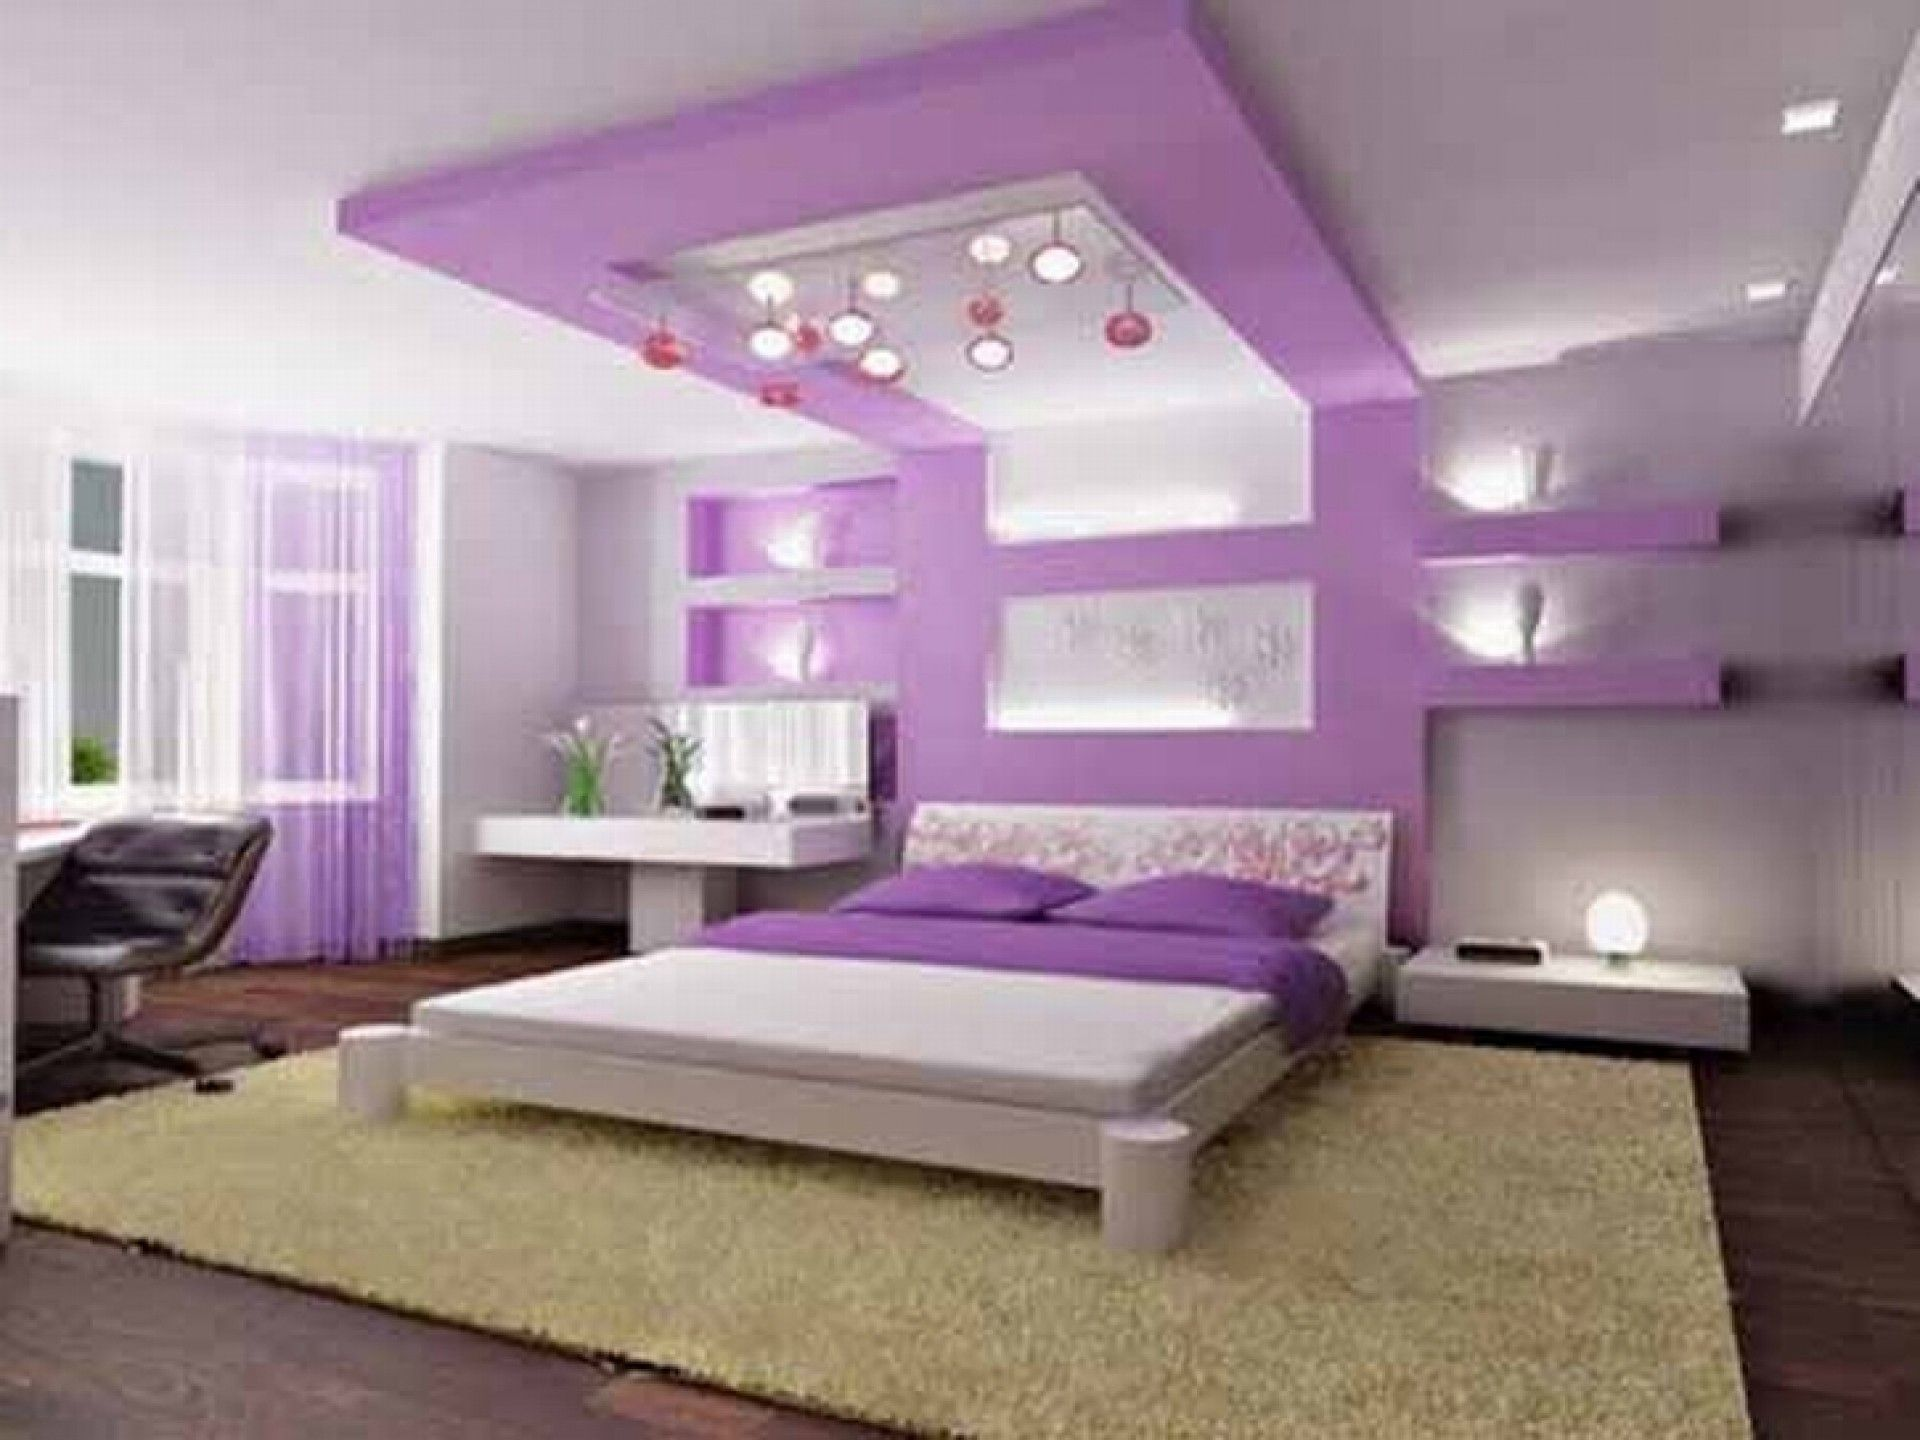 Luxury bedrooms for teenage girls - Simple Interior Design For The Bedroom For Girls With Purple Bedroom Interior Design For Girls Plus White Lighting And Black Swivel Chair